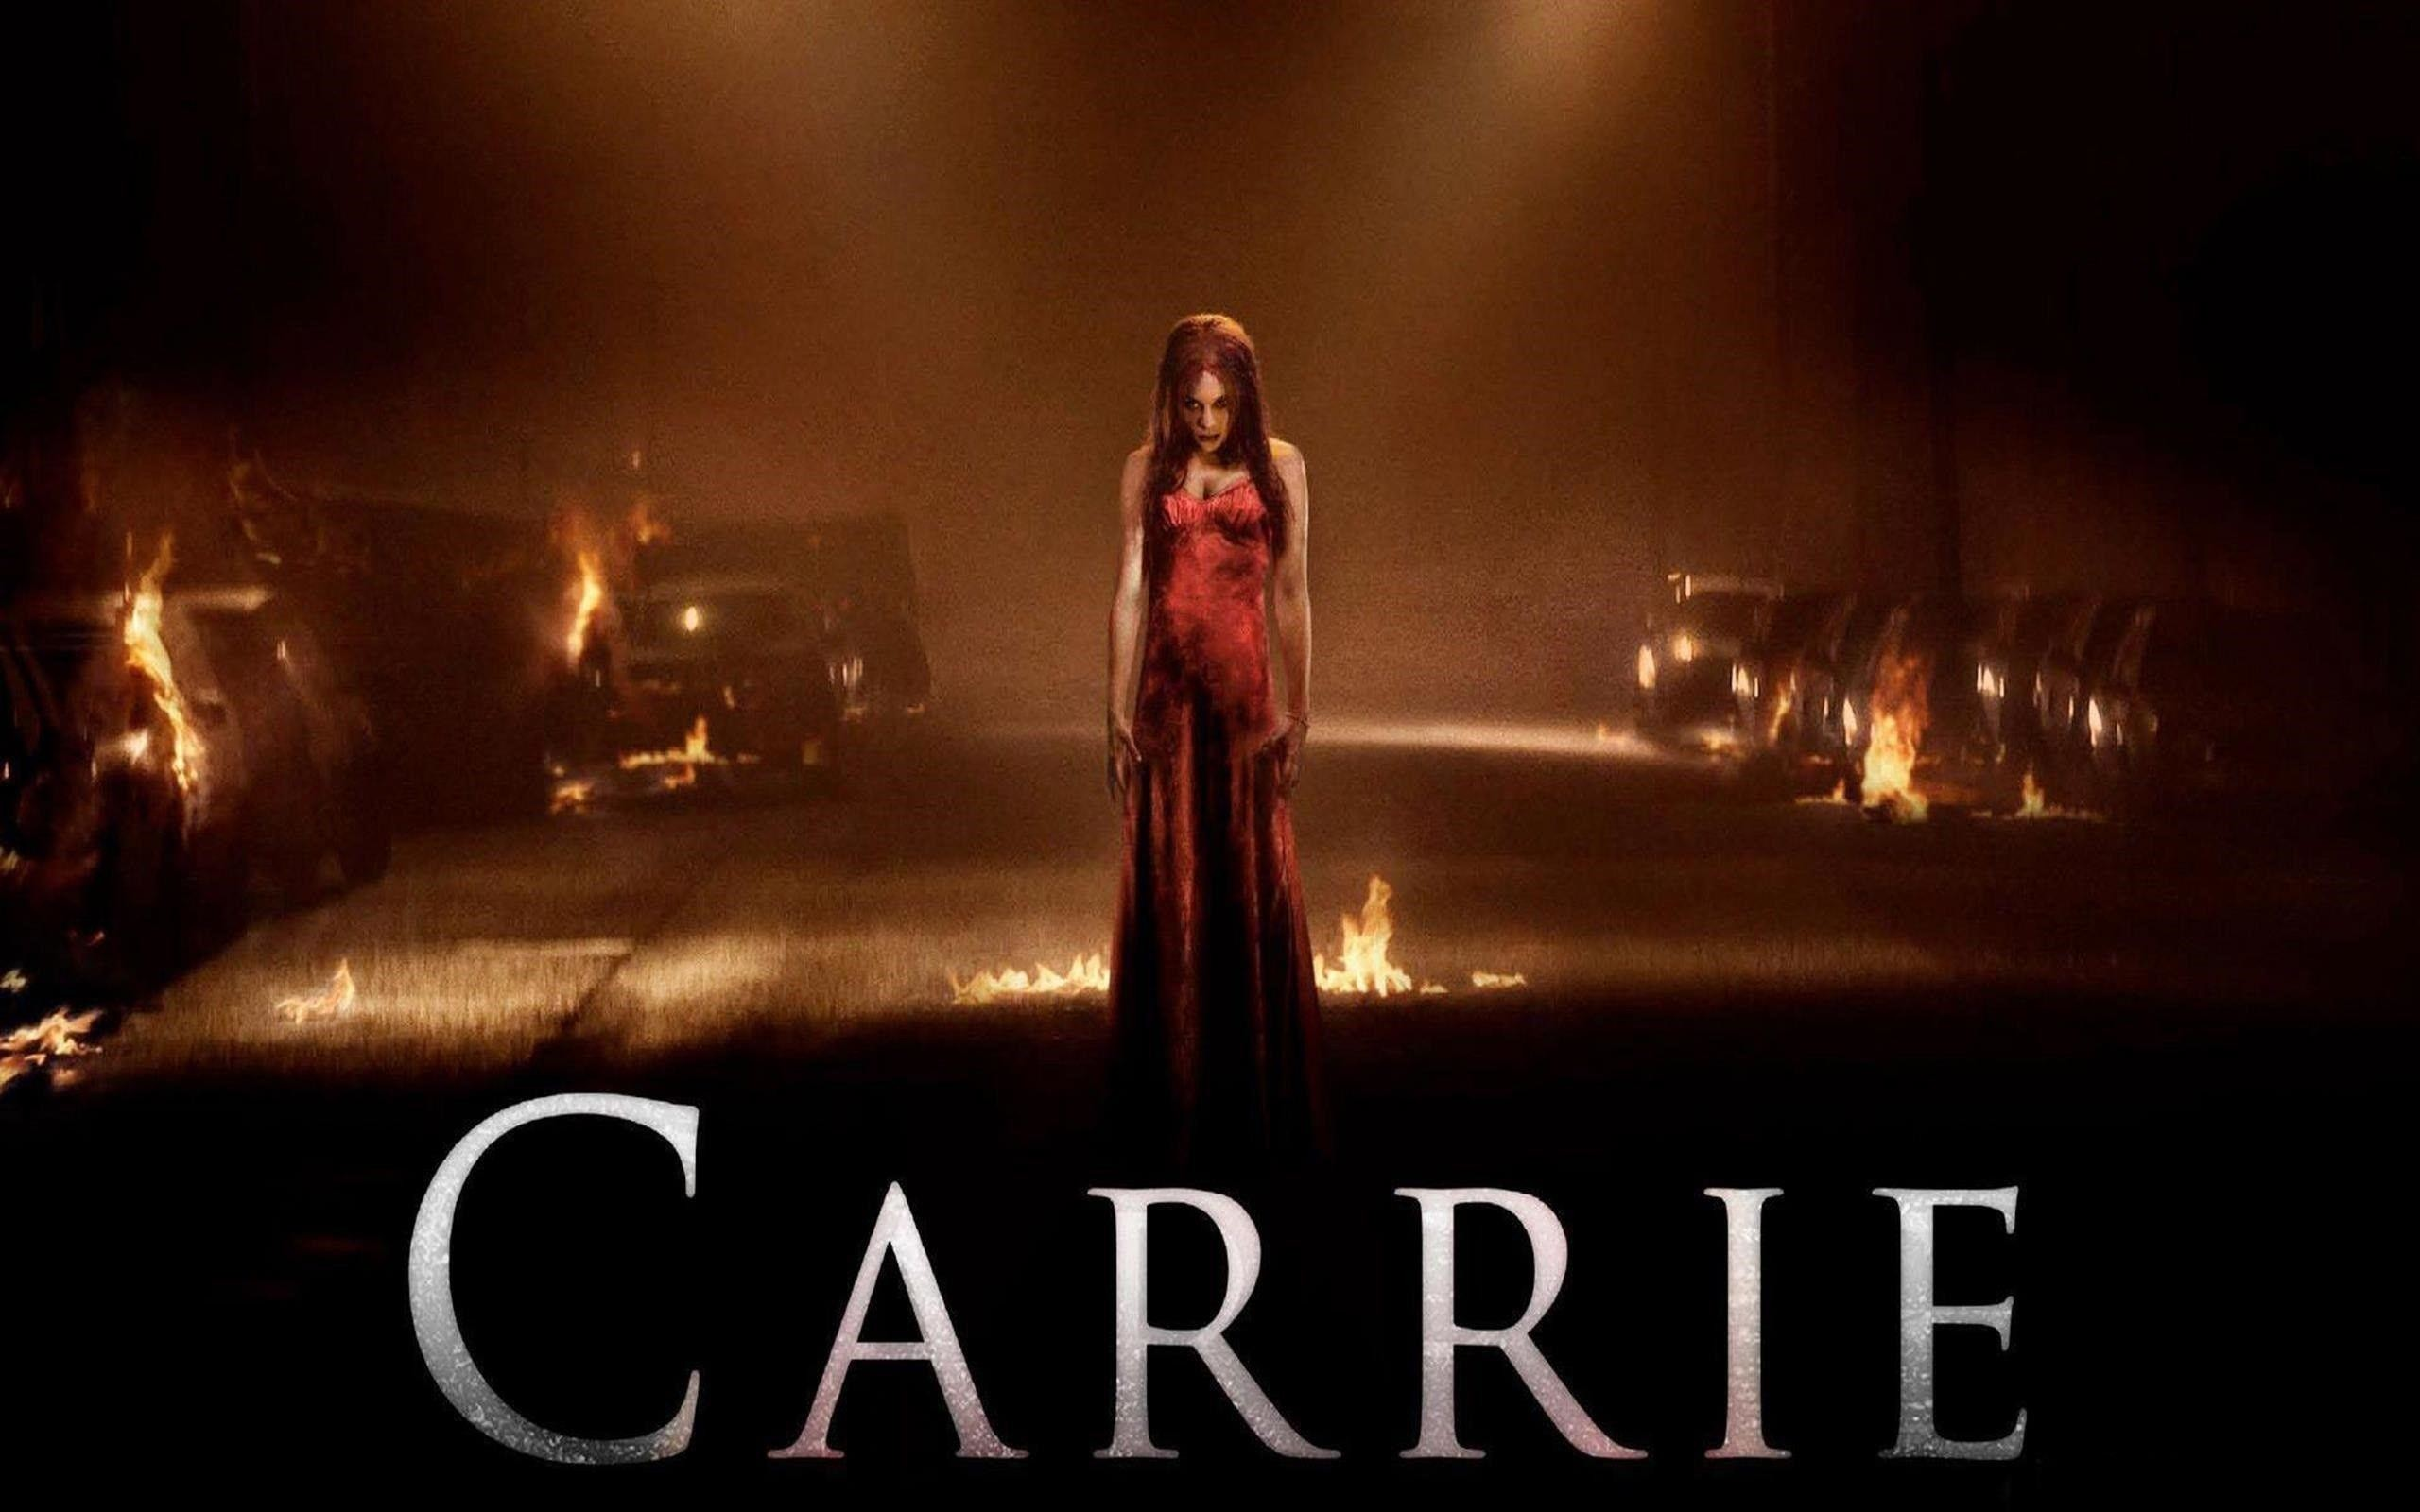 Carrie Hollywood Horror Movie HD Wallpaper Desktop Backgrounds Free